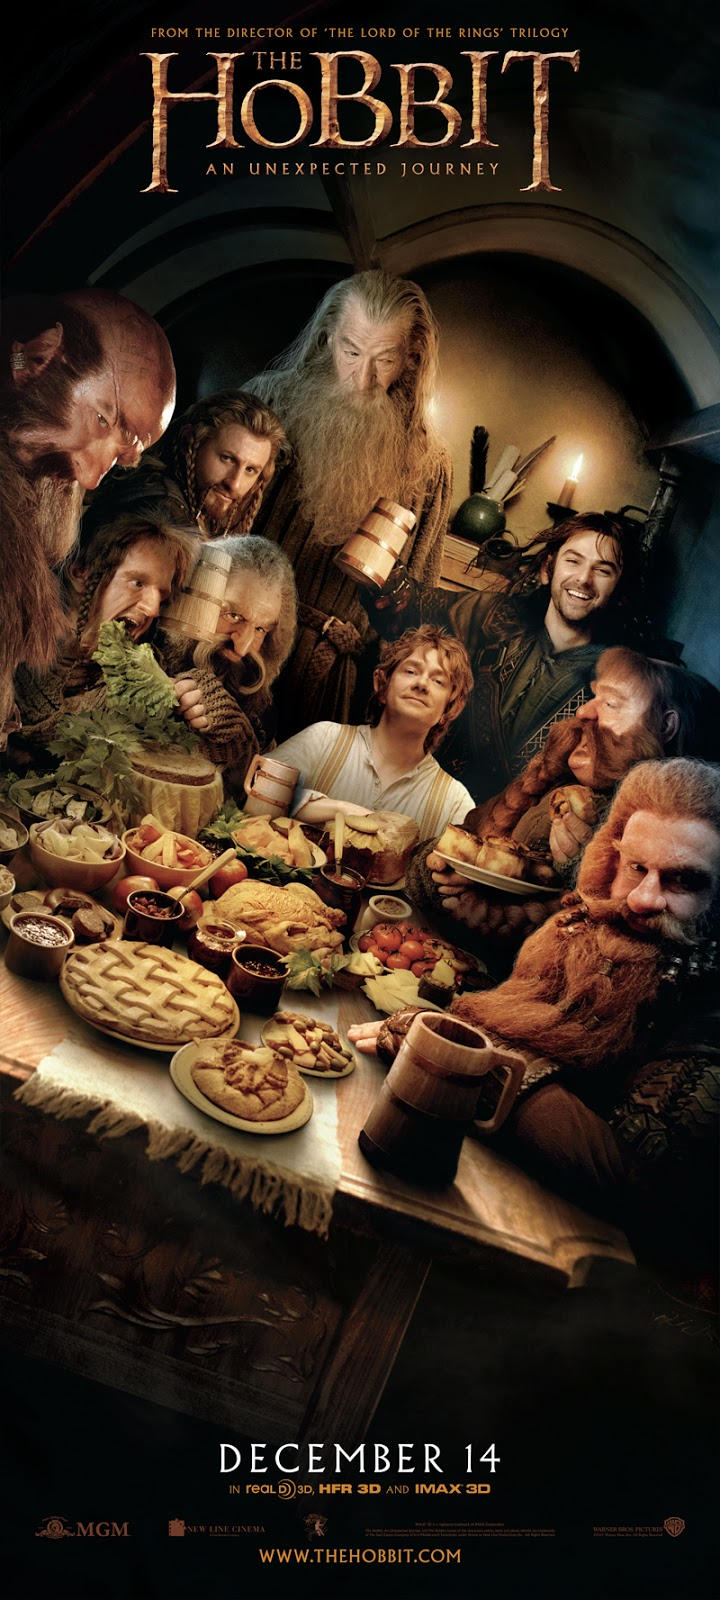 Production Design on The Hobbit